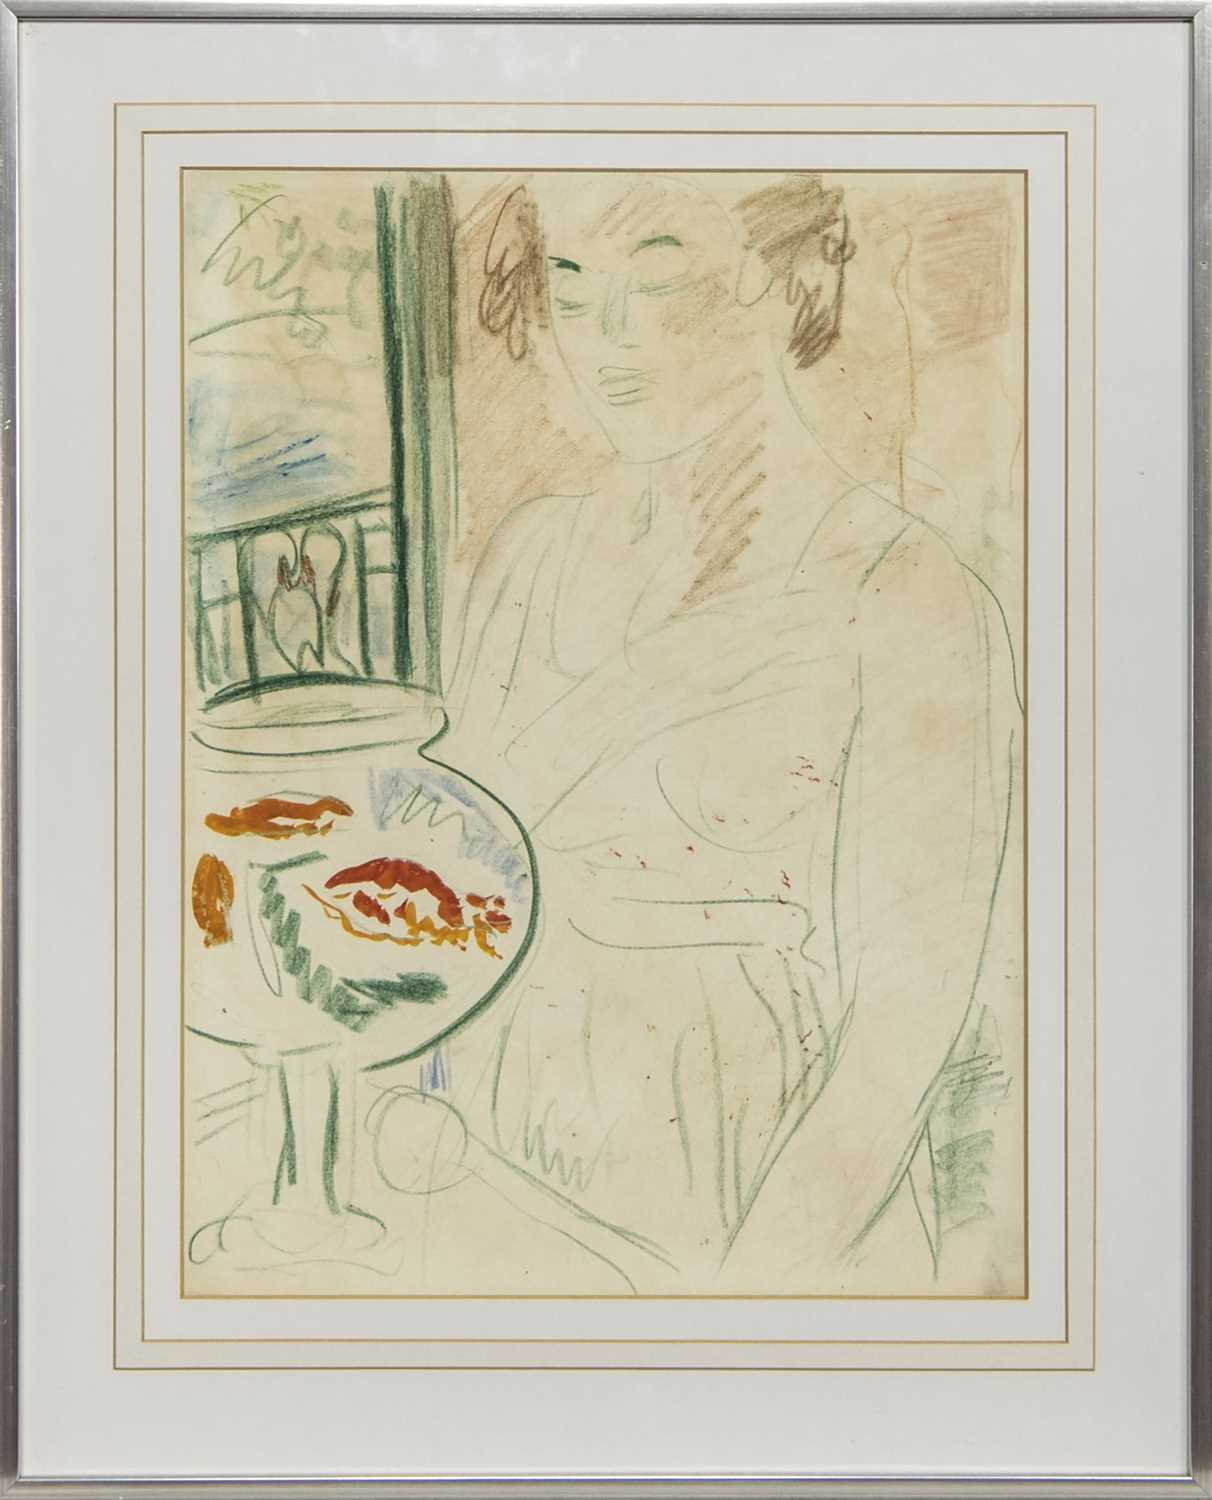 Lot 115 - THE GOLDFISH BOWL, A CRAYON BY GEORGE LESLIE HUNTER